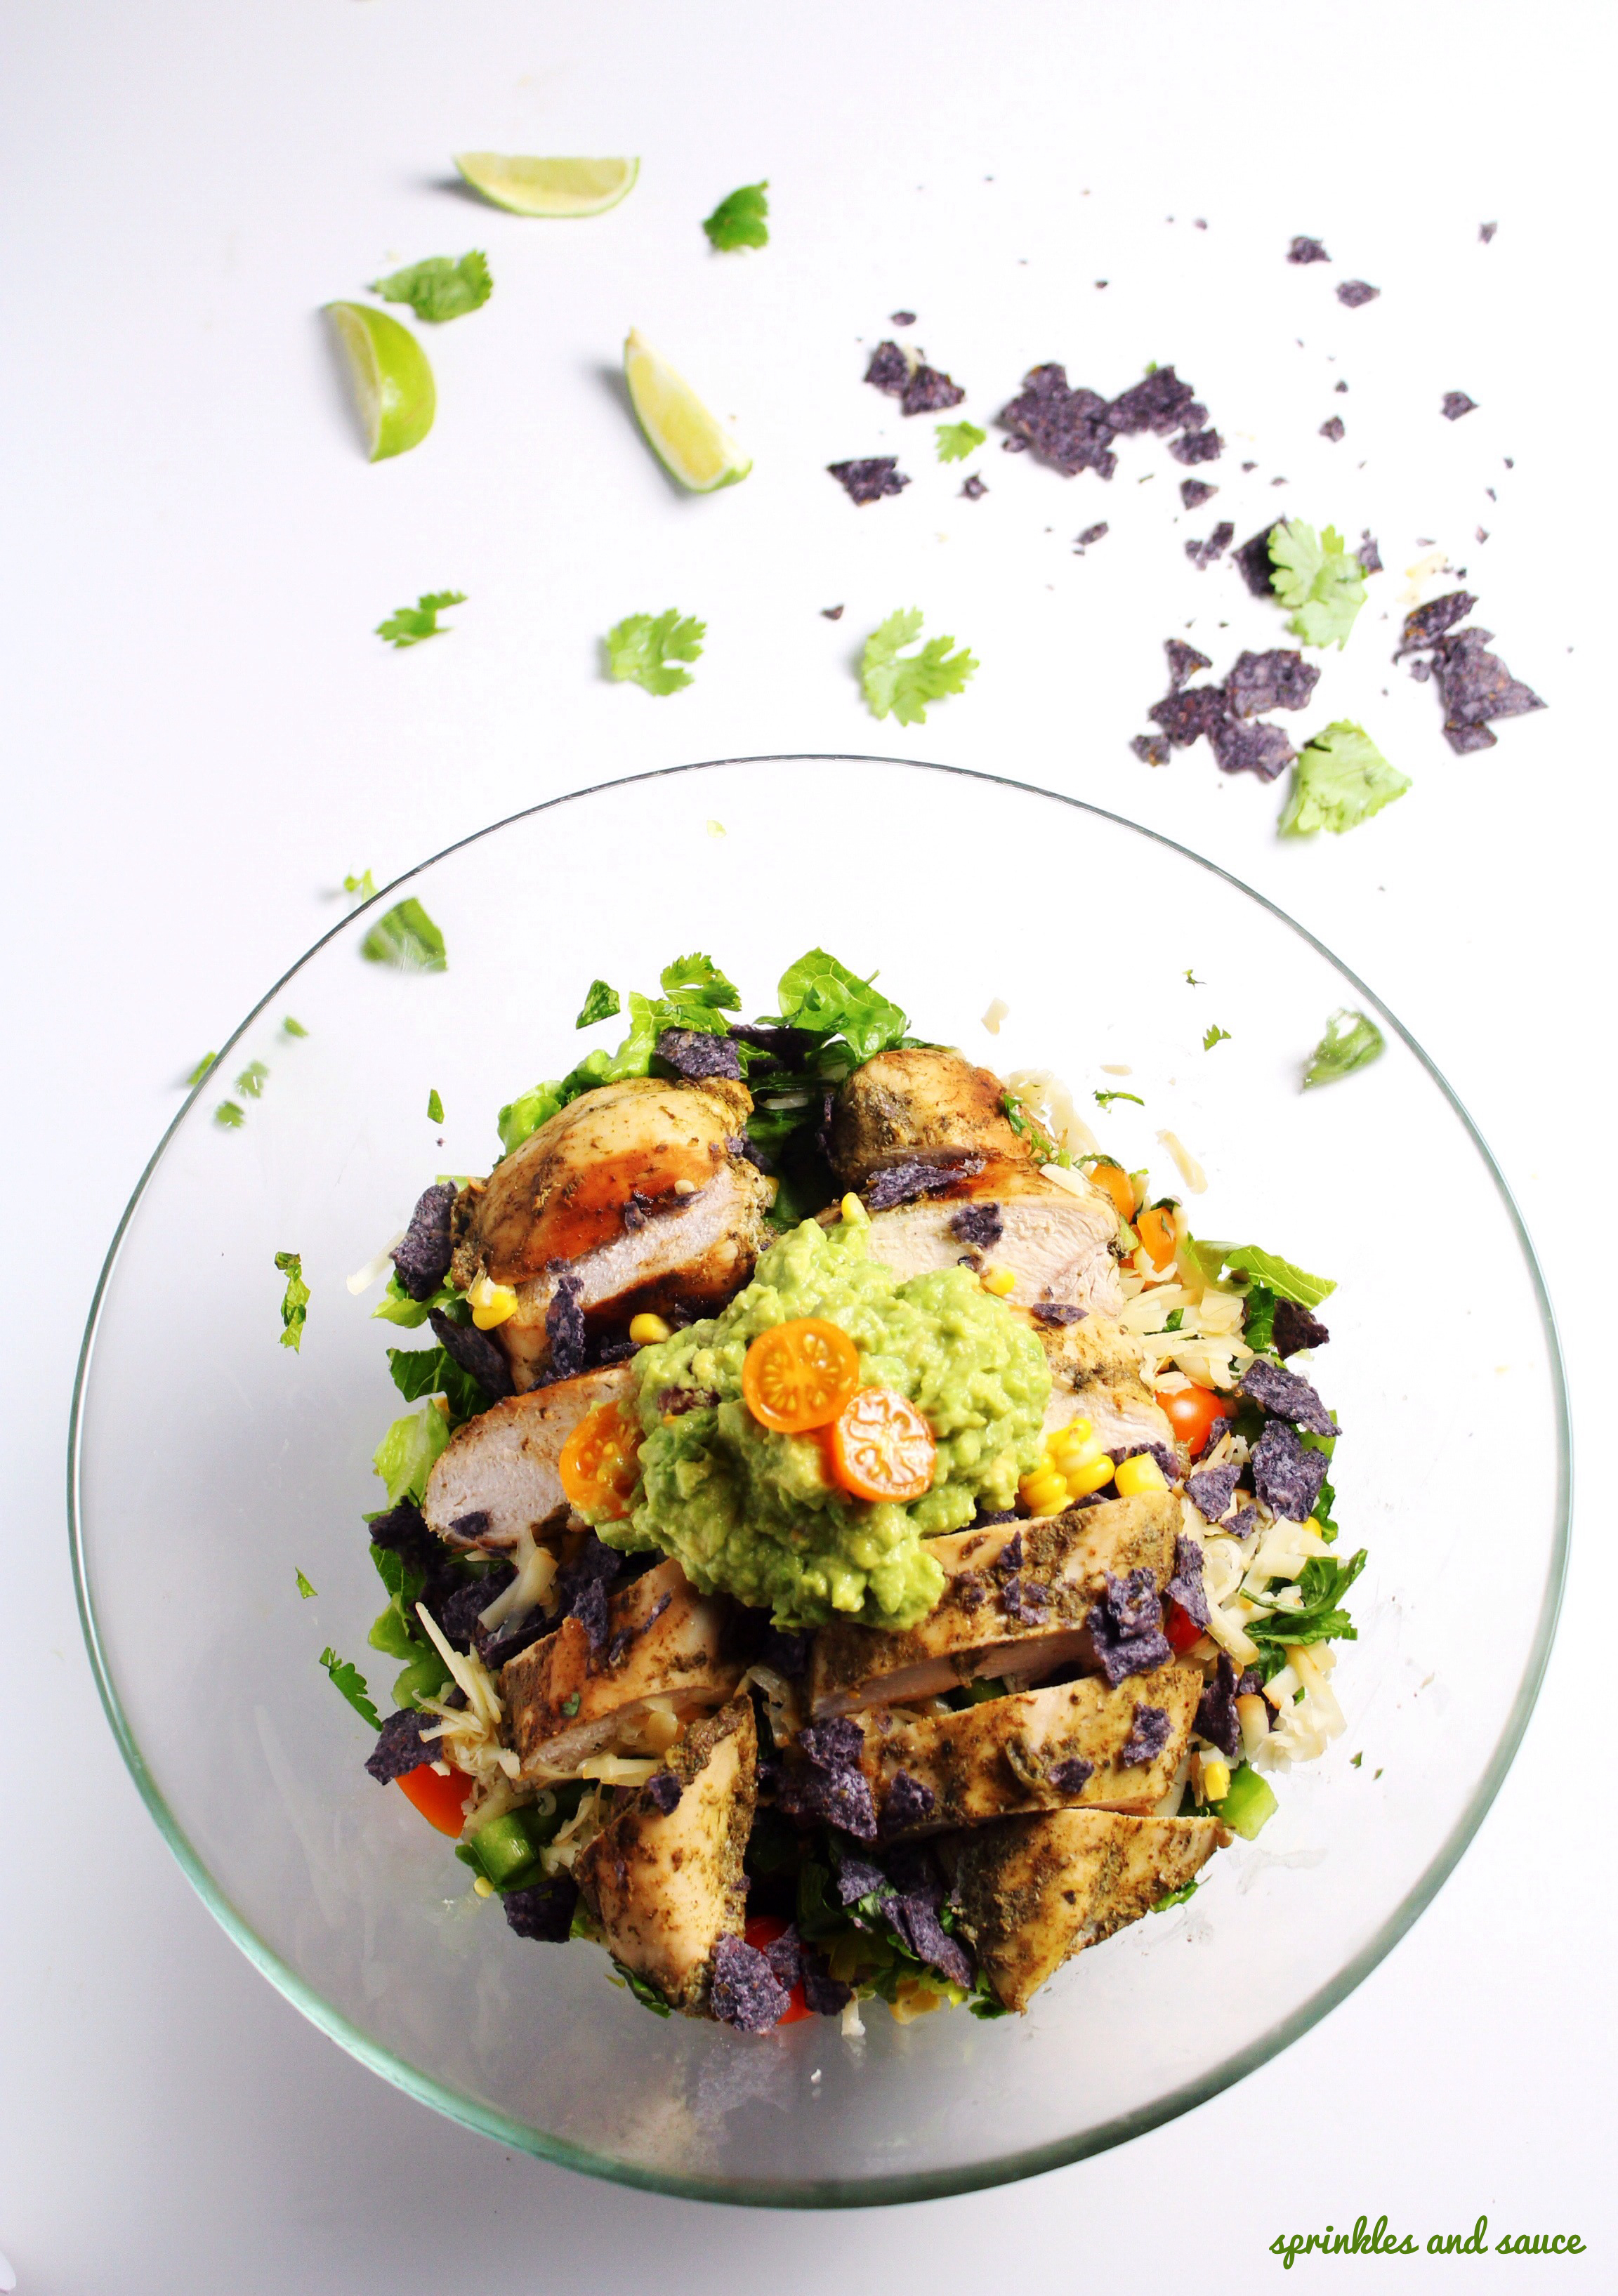 Mexican Chopped Salad With Grilled Chicken And Guacamole Sprinkles And Sauce